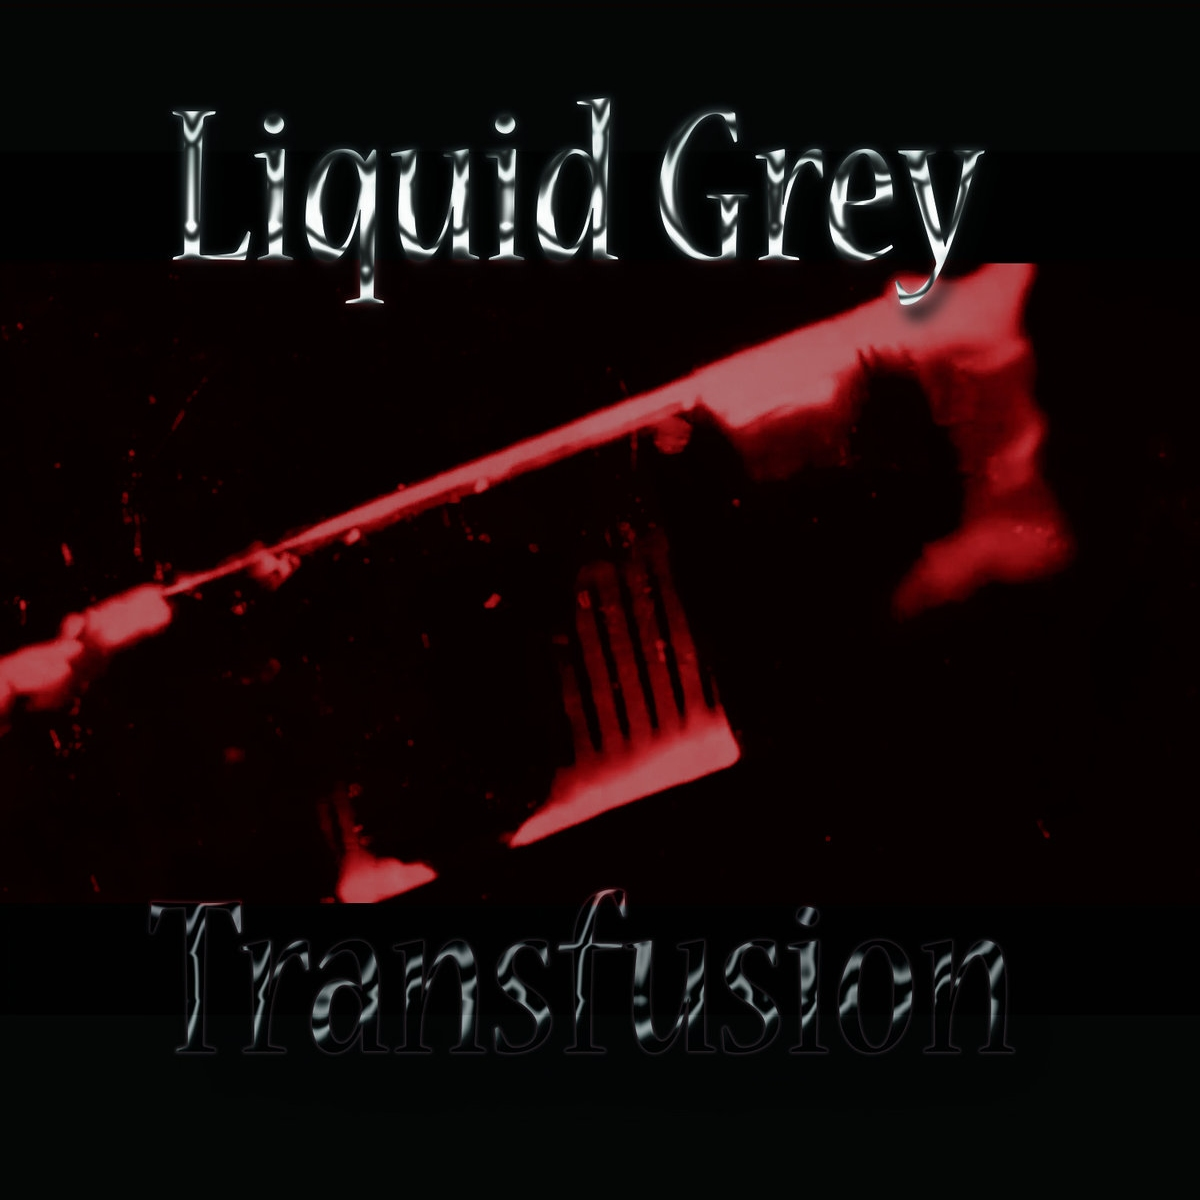 Liquid Grey, Transfusion